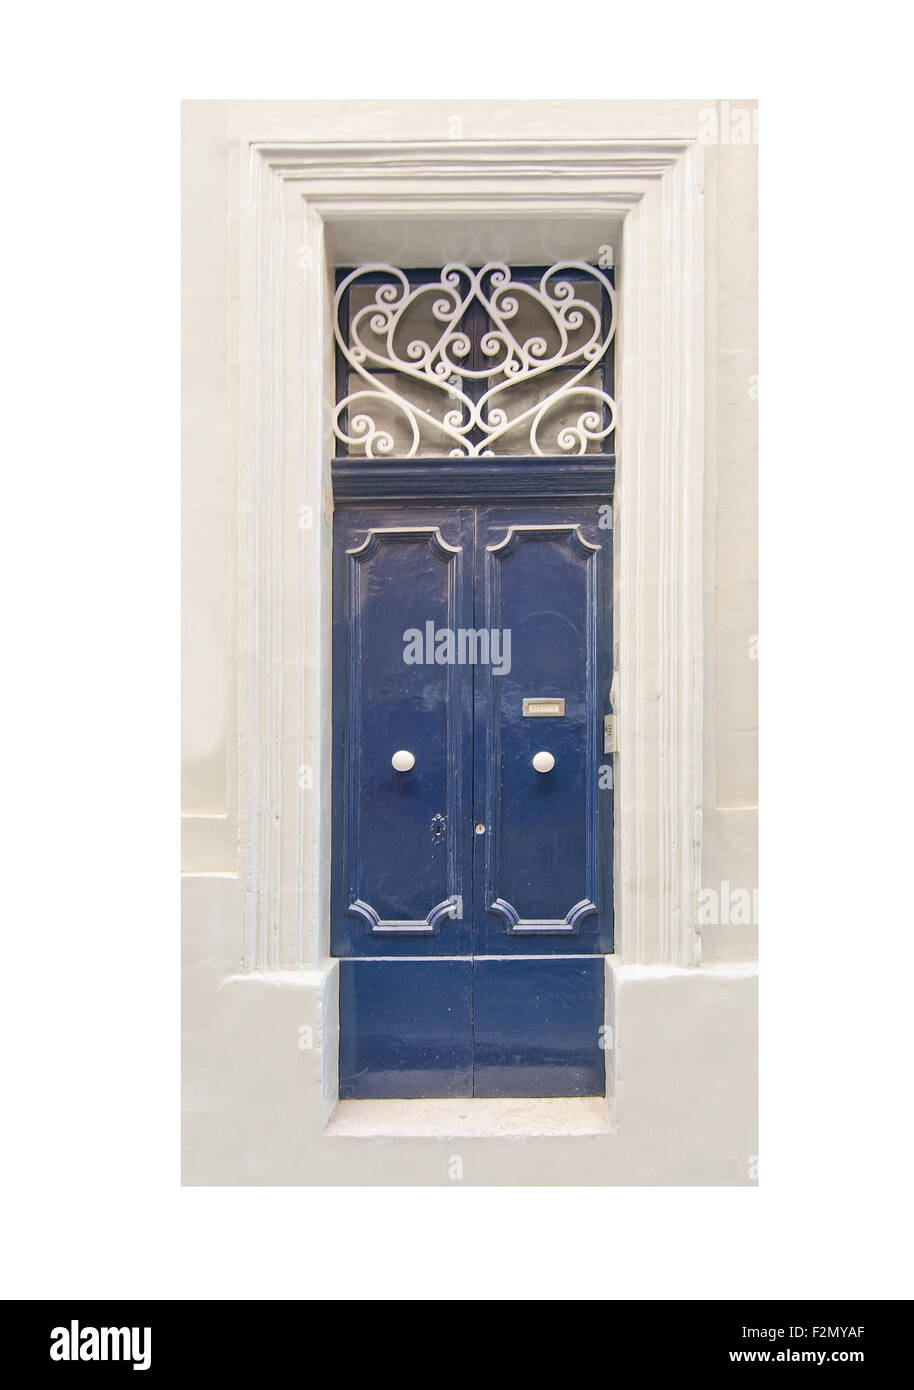 Blue Painted Door With White Wrought Iron Pattern And White Knobs